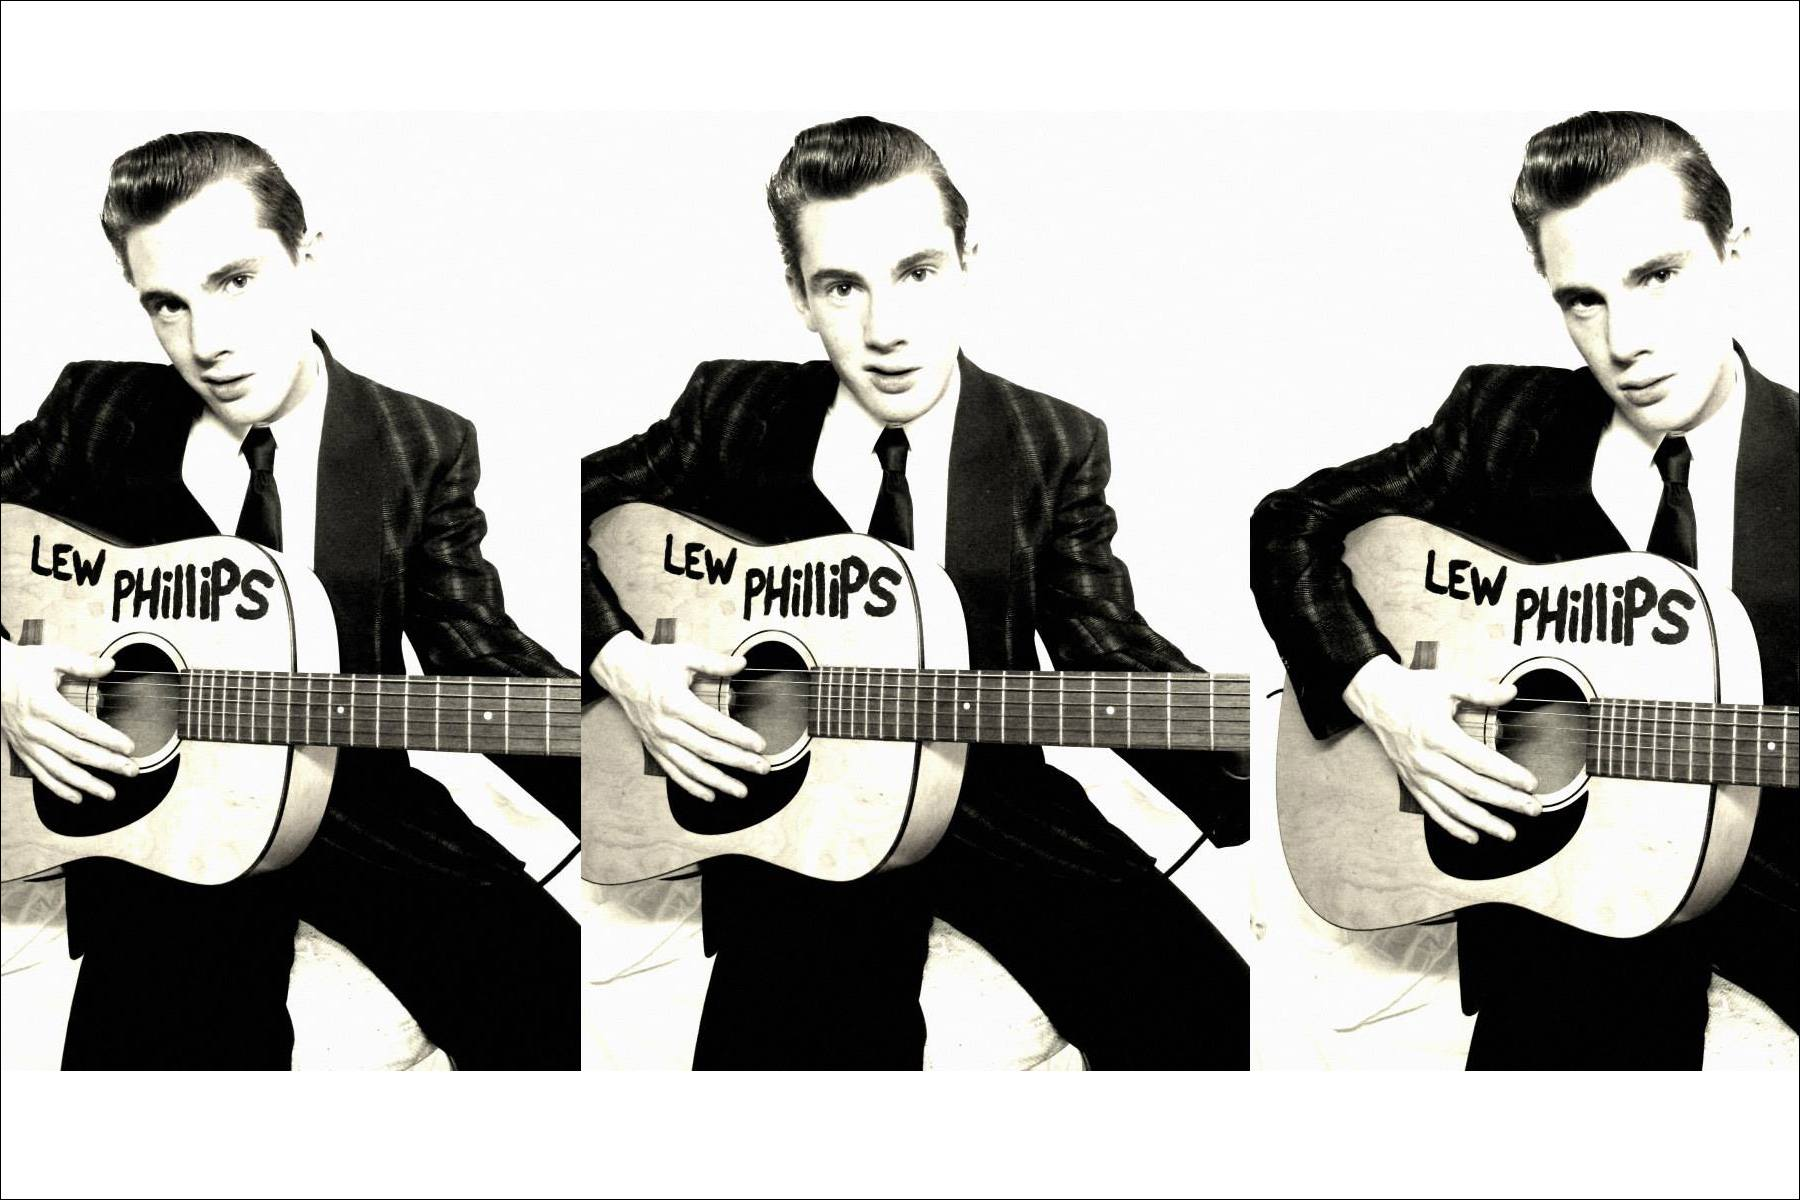 B&W photos of musician Lew Phillips. Ponyboy magazine NY.